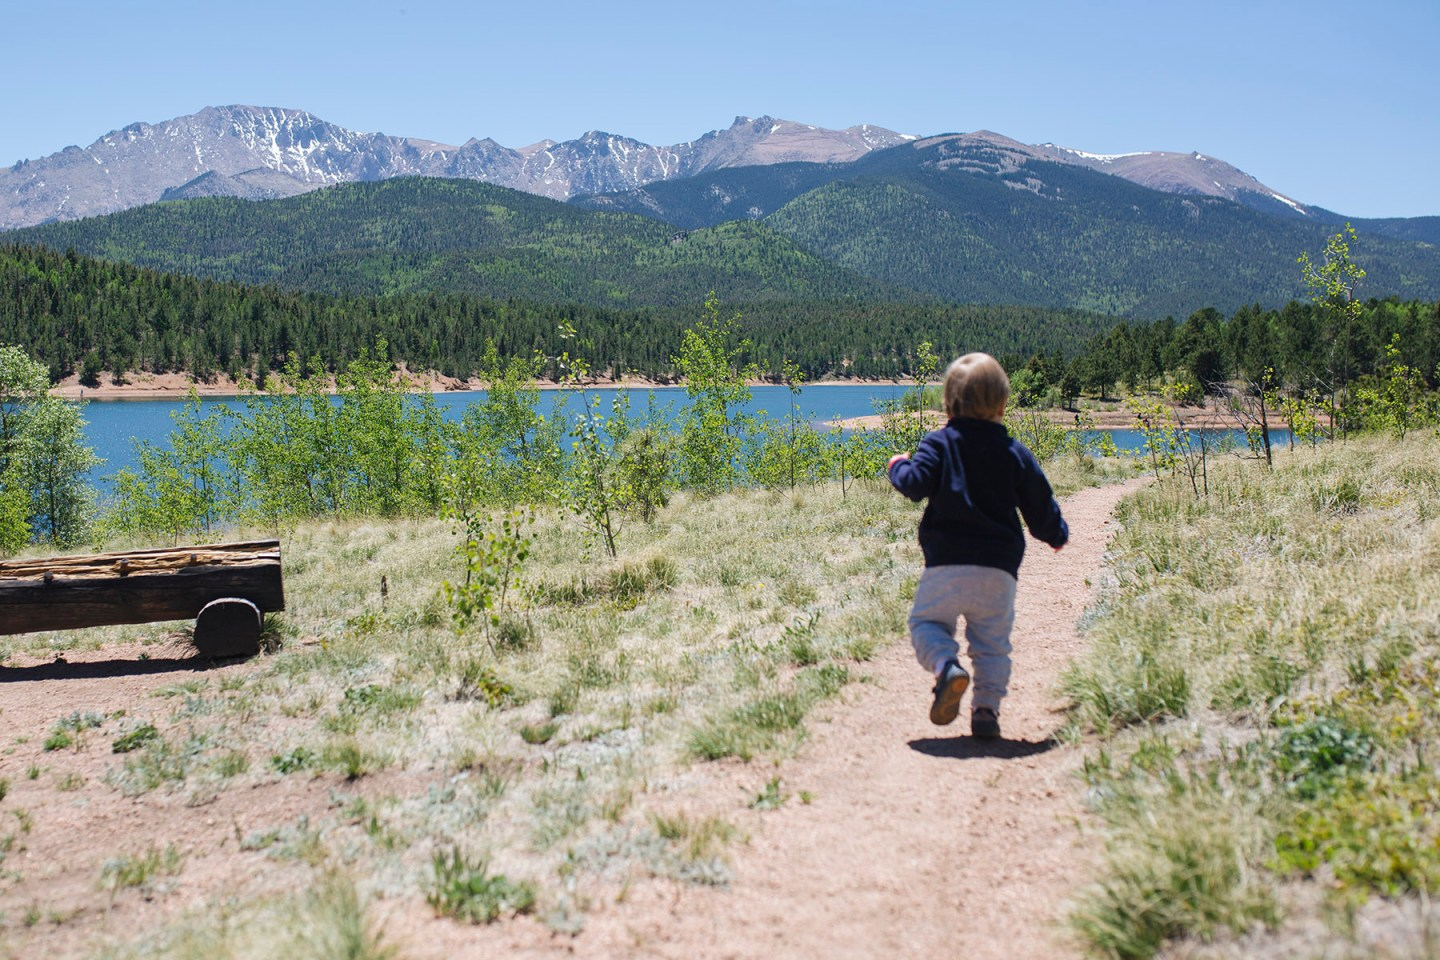 Toddler running in trail in Colorado